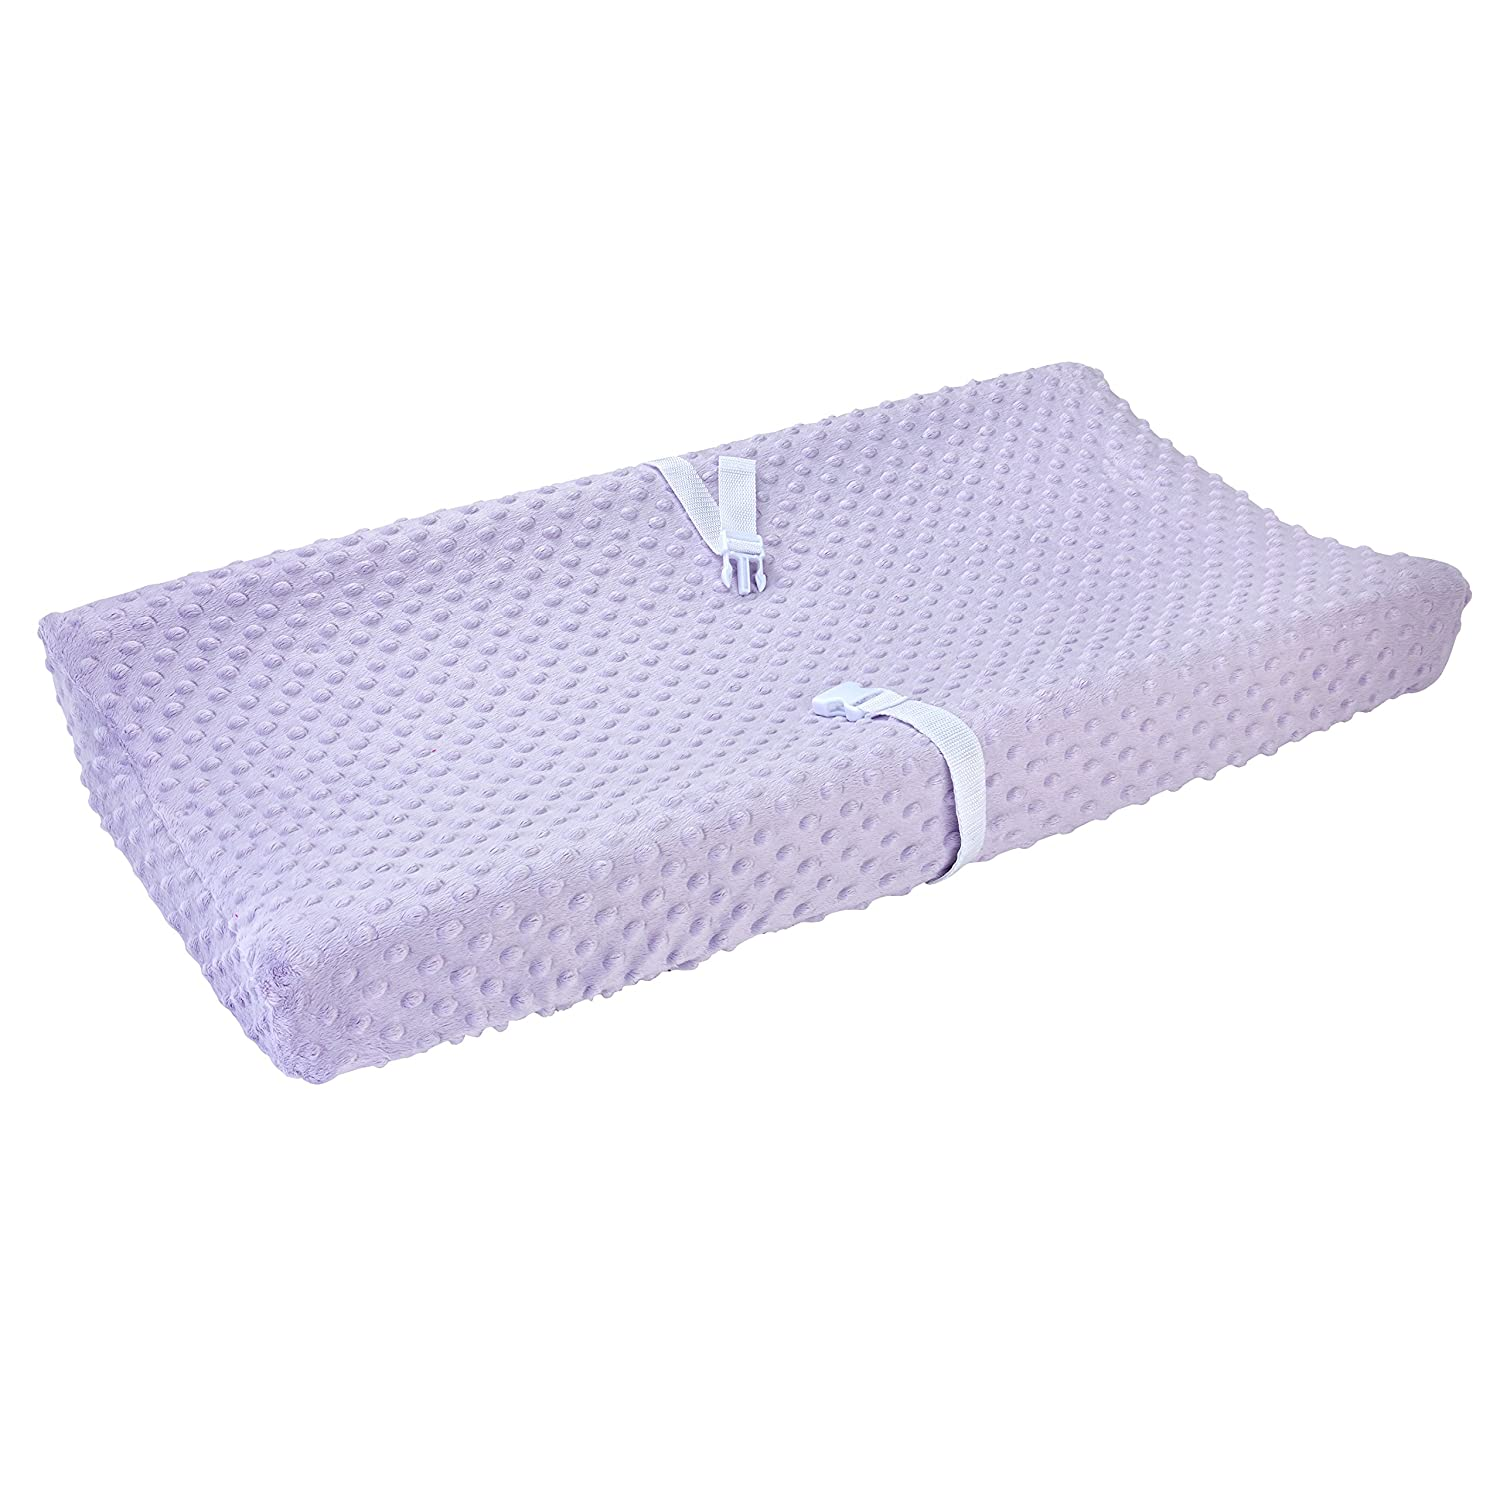 Carter's Changing Pad Cover, Solid Orchid, One Size